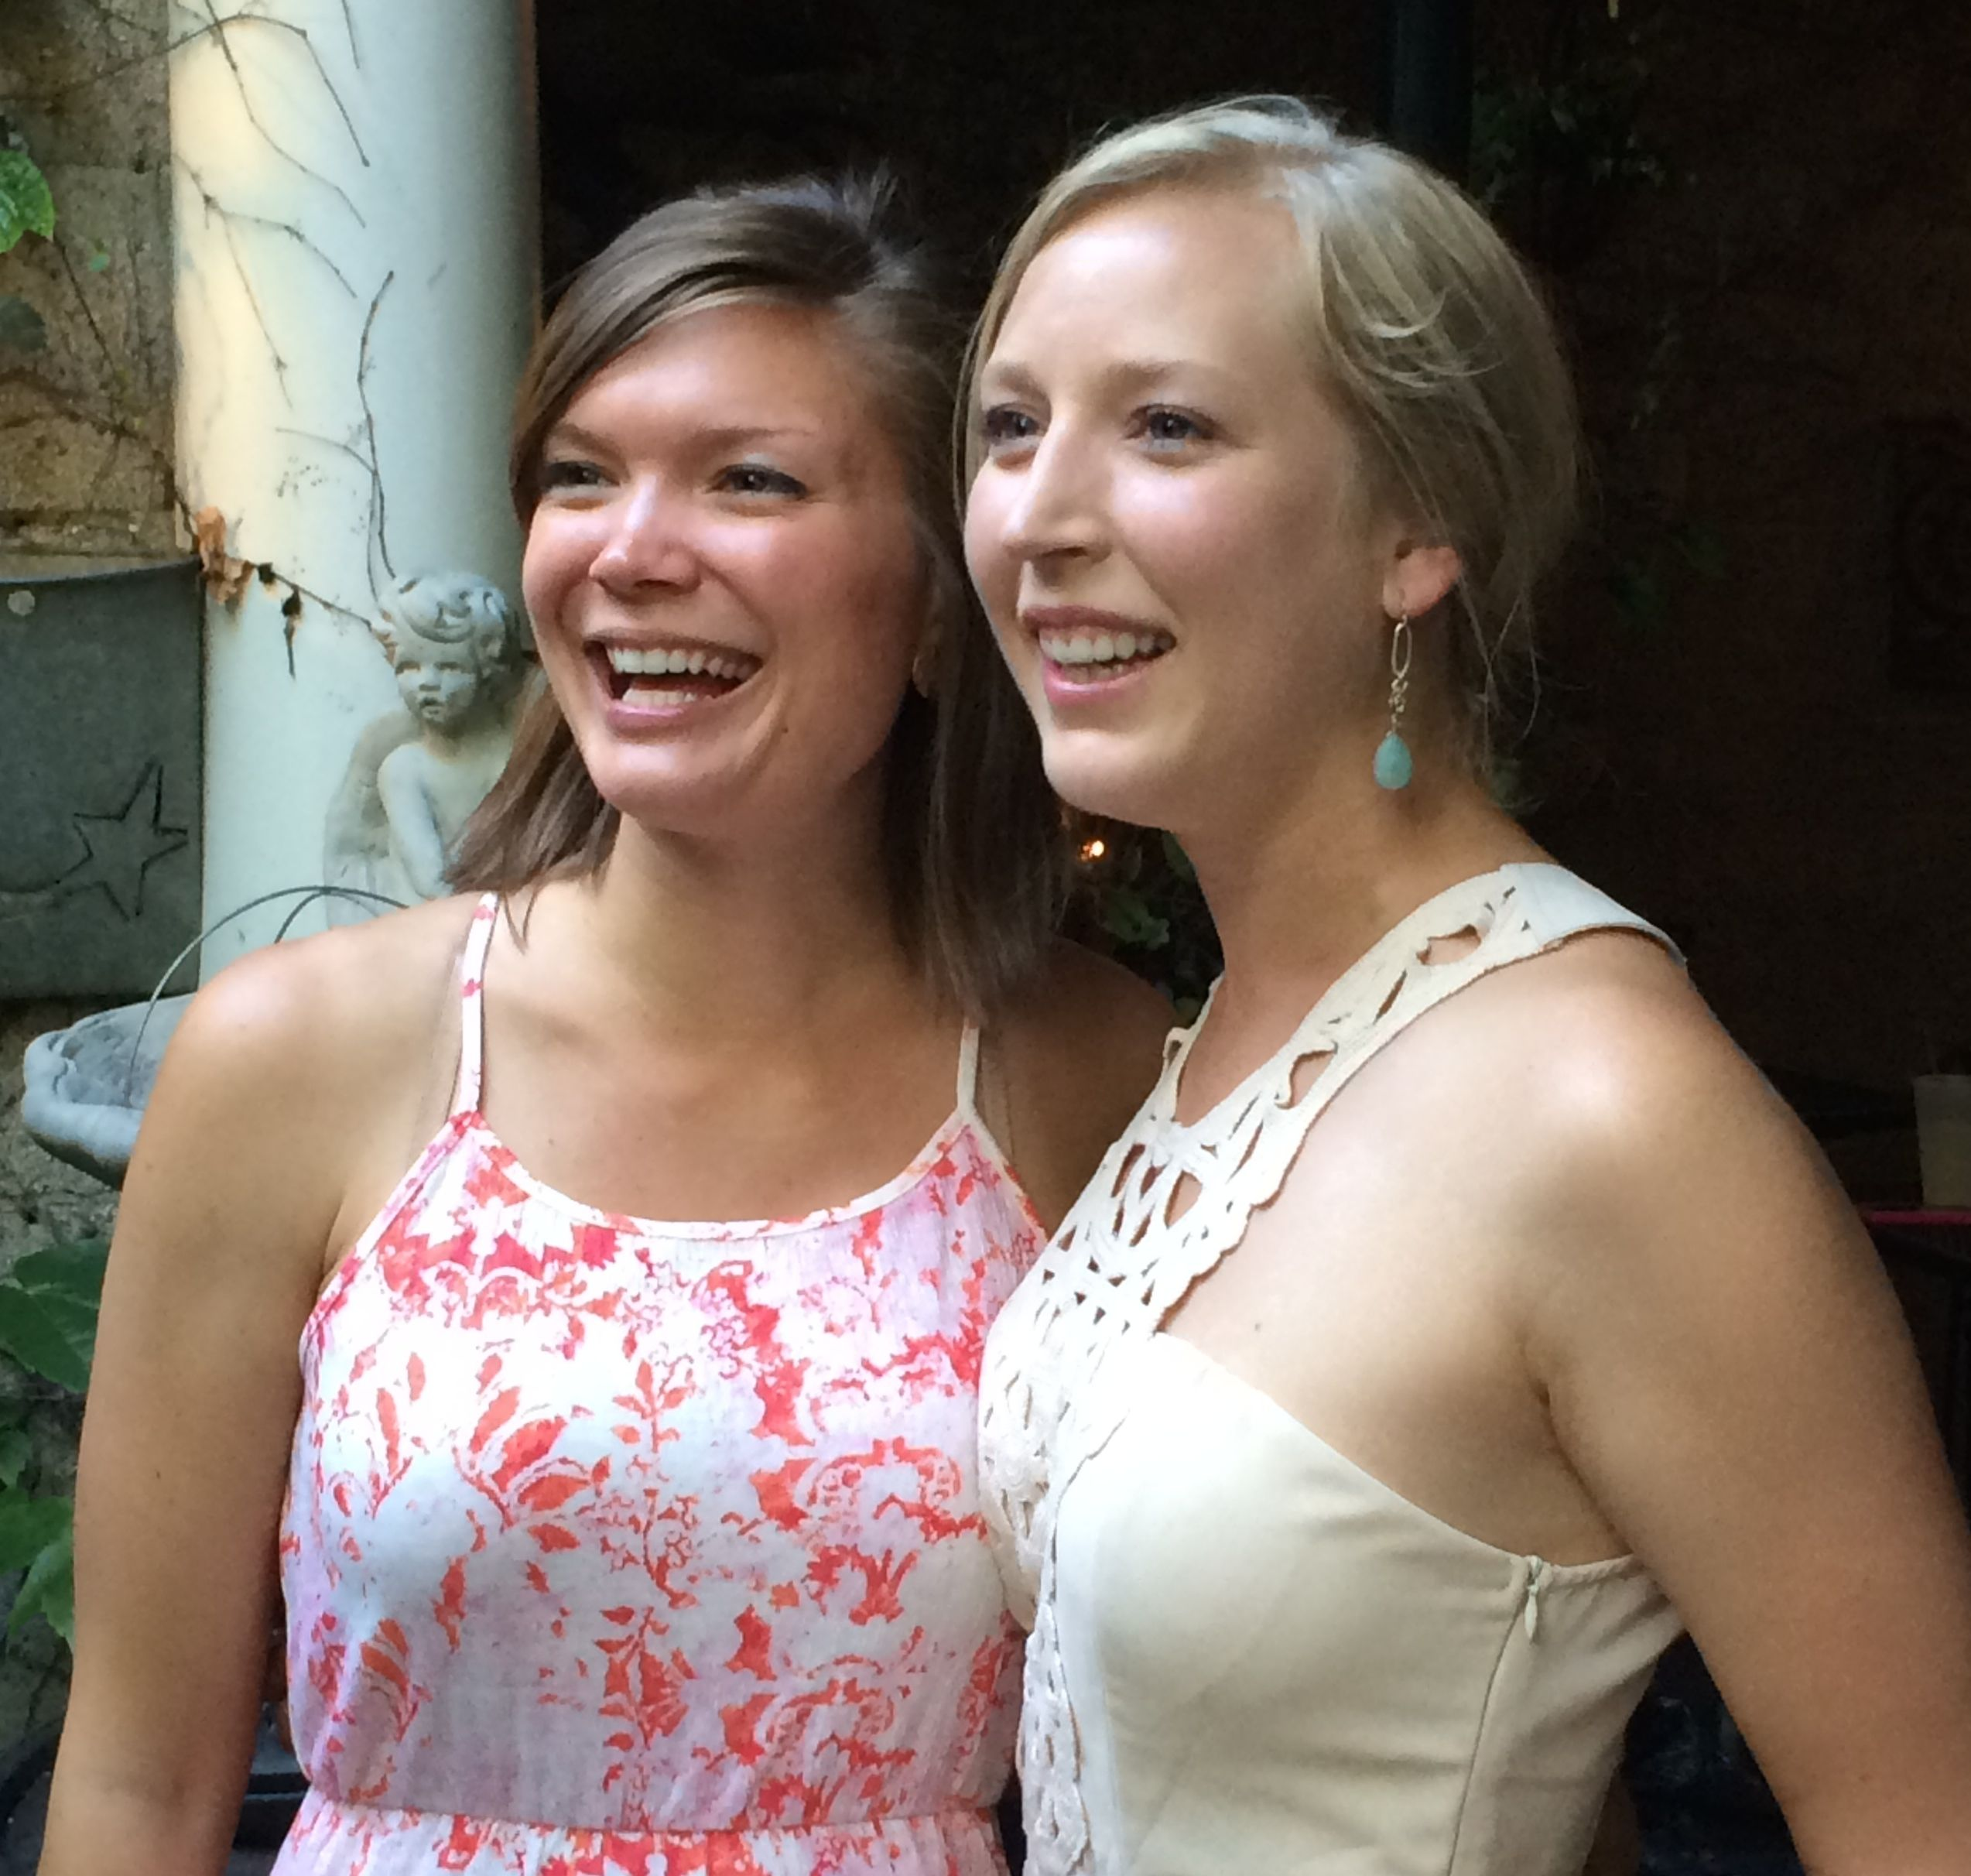 Lisa, the Maid of Honor, and Amber, the bride